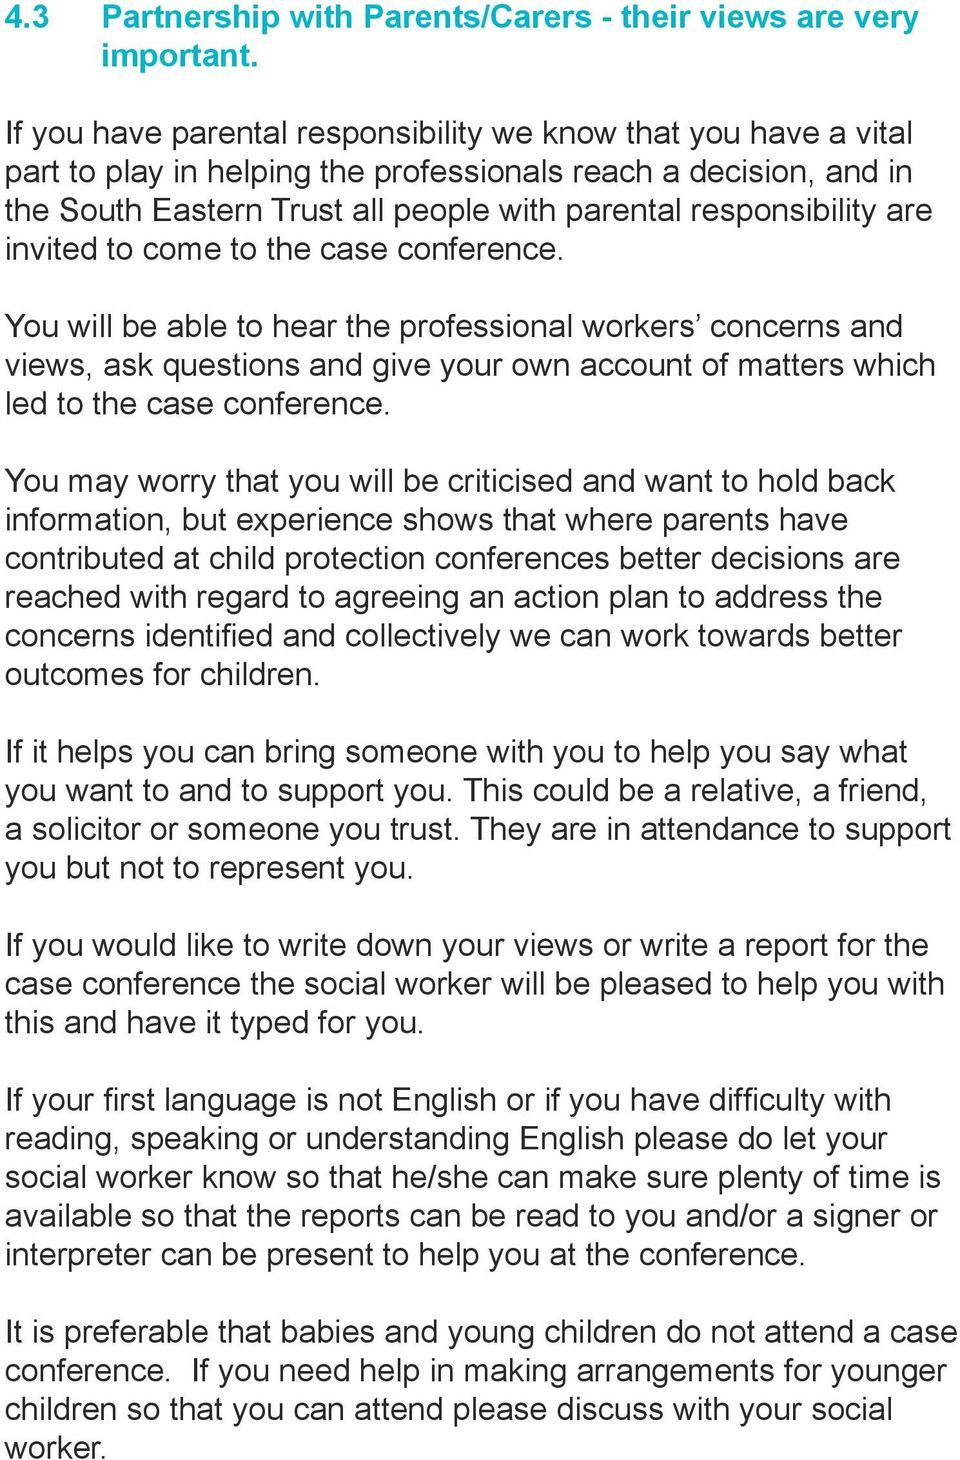 are invited to come to the case conference. You will be able to hear the professional workers concerns and views, ask questions and give your own account of matters which led to the case conference.